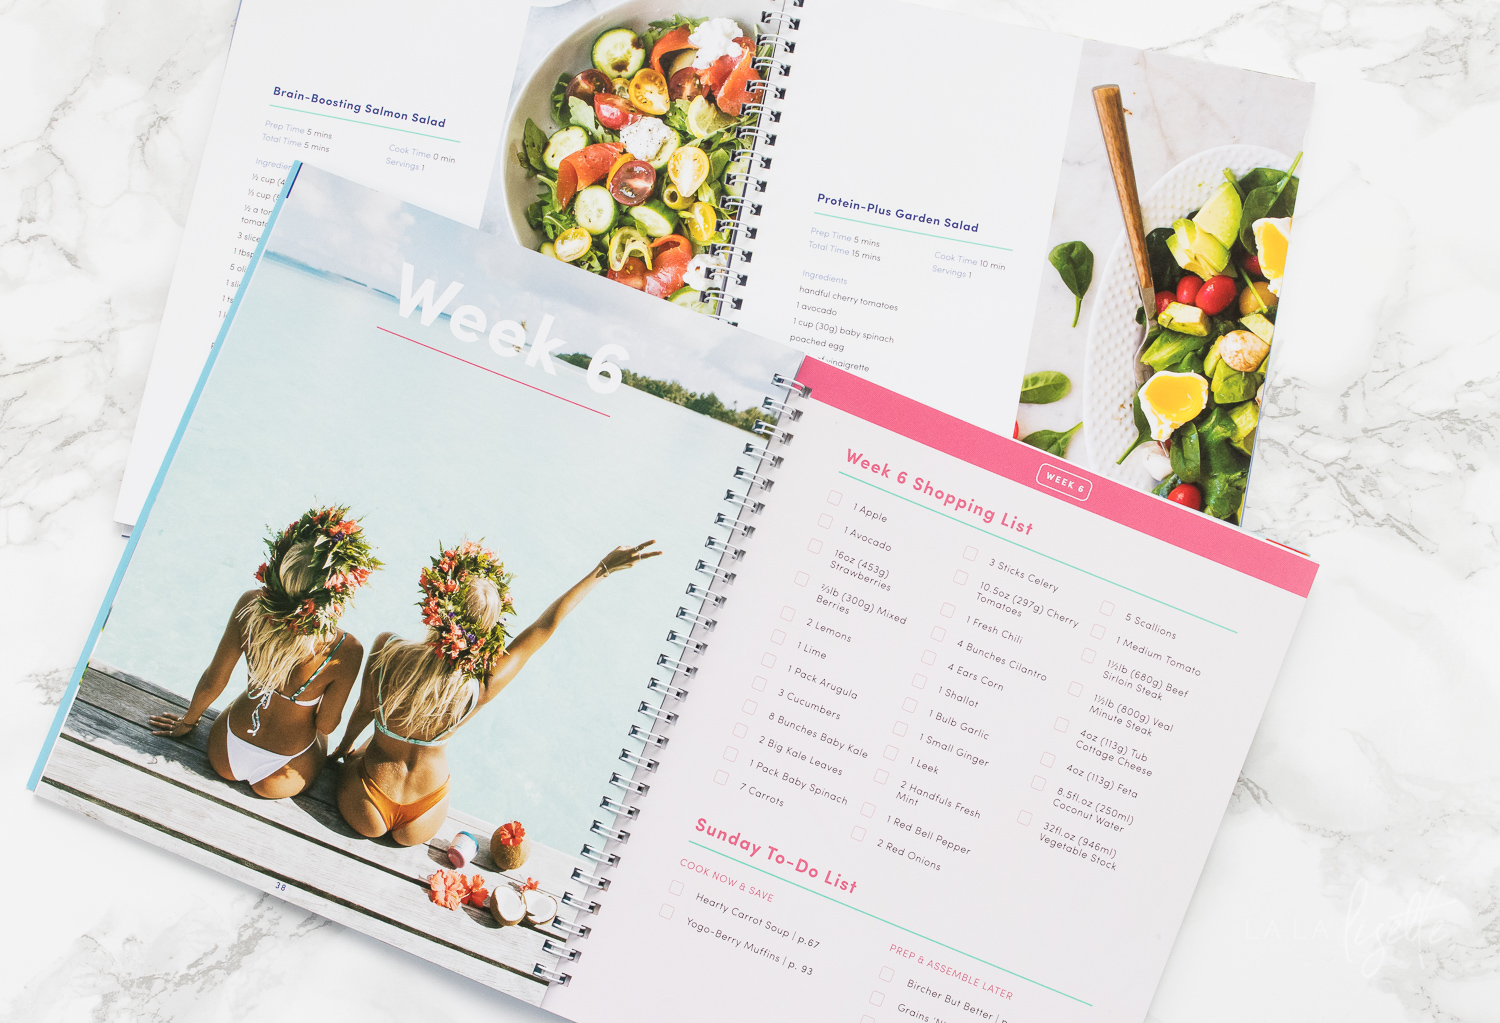 BodyBoss Nutrition Guide has a weekly shopping list and Sunday To-Do checklist to help you start the week strong